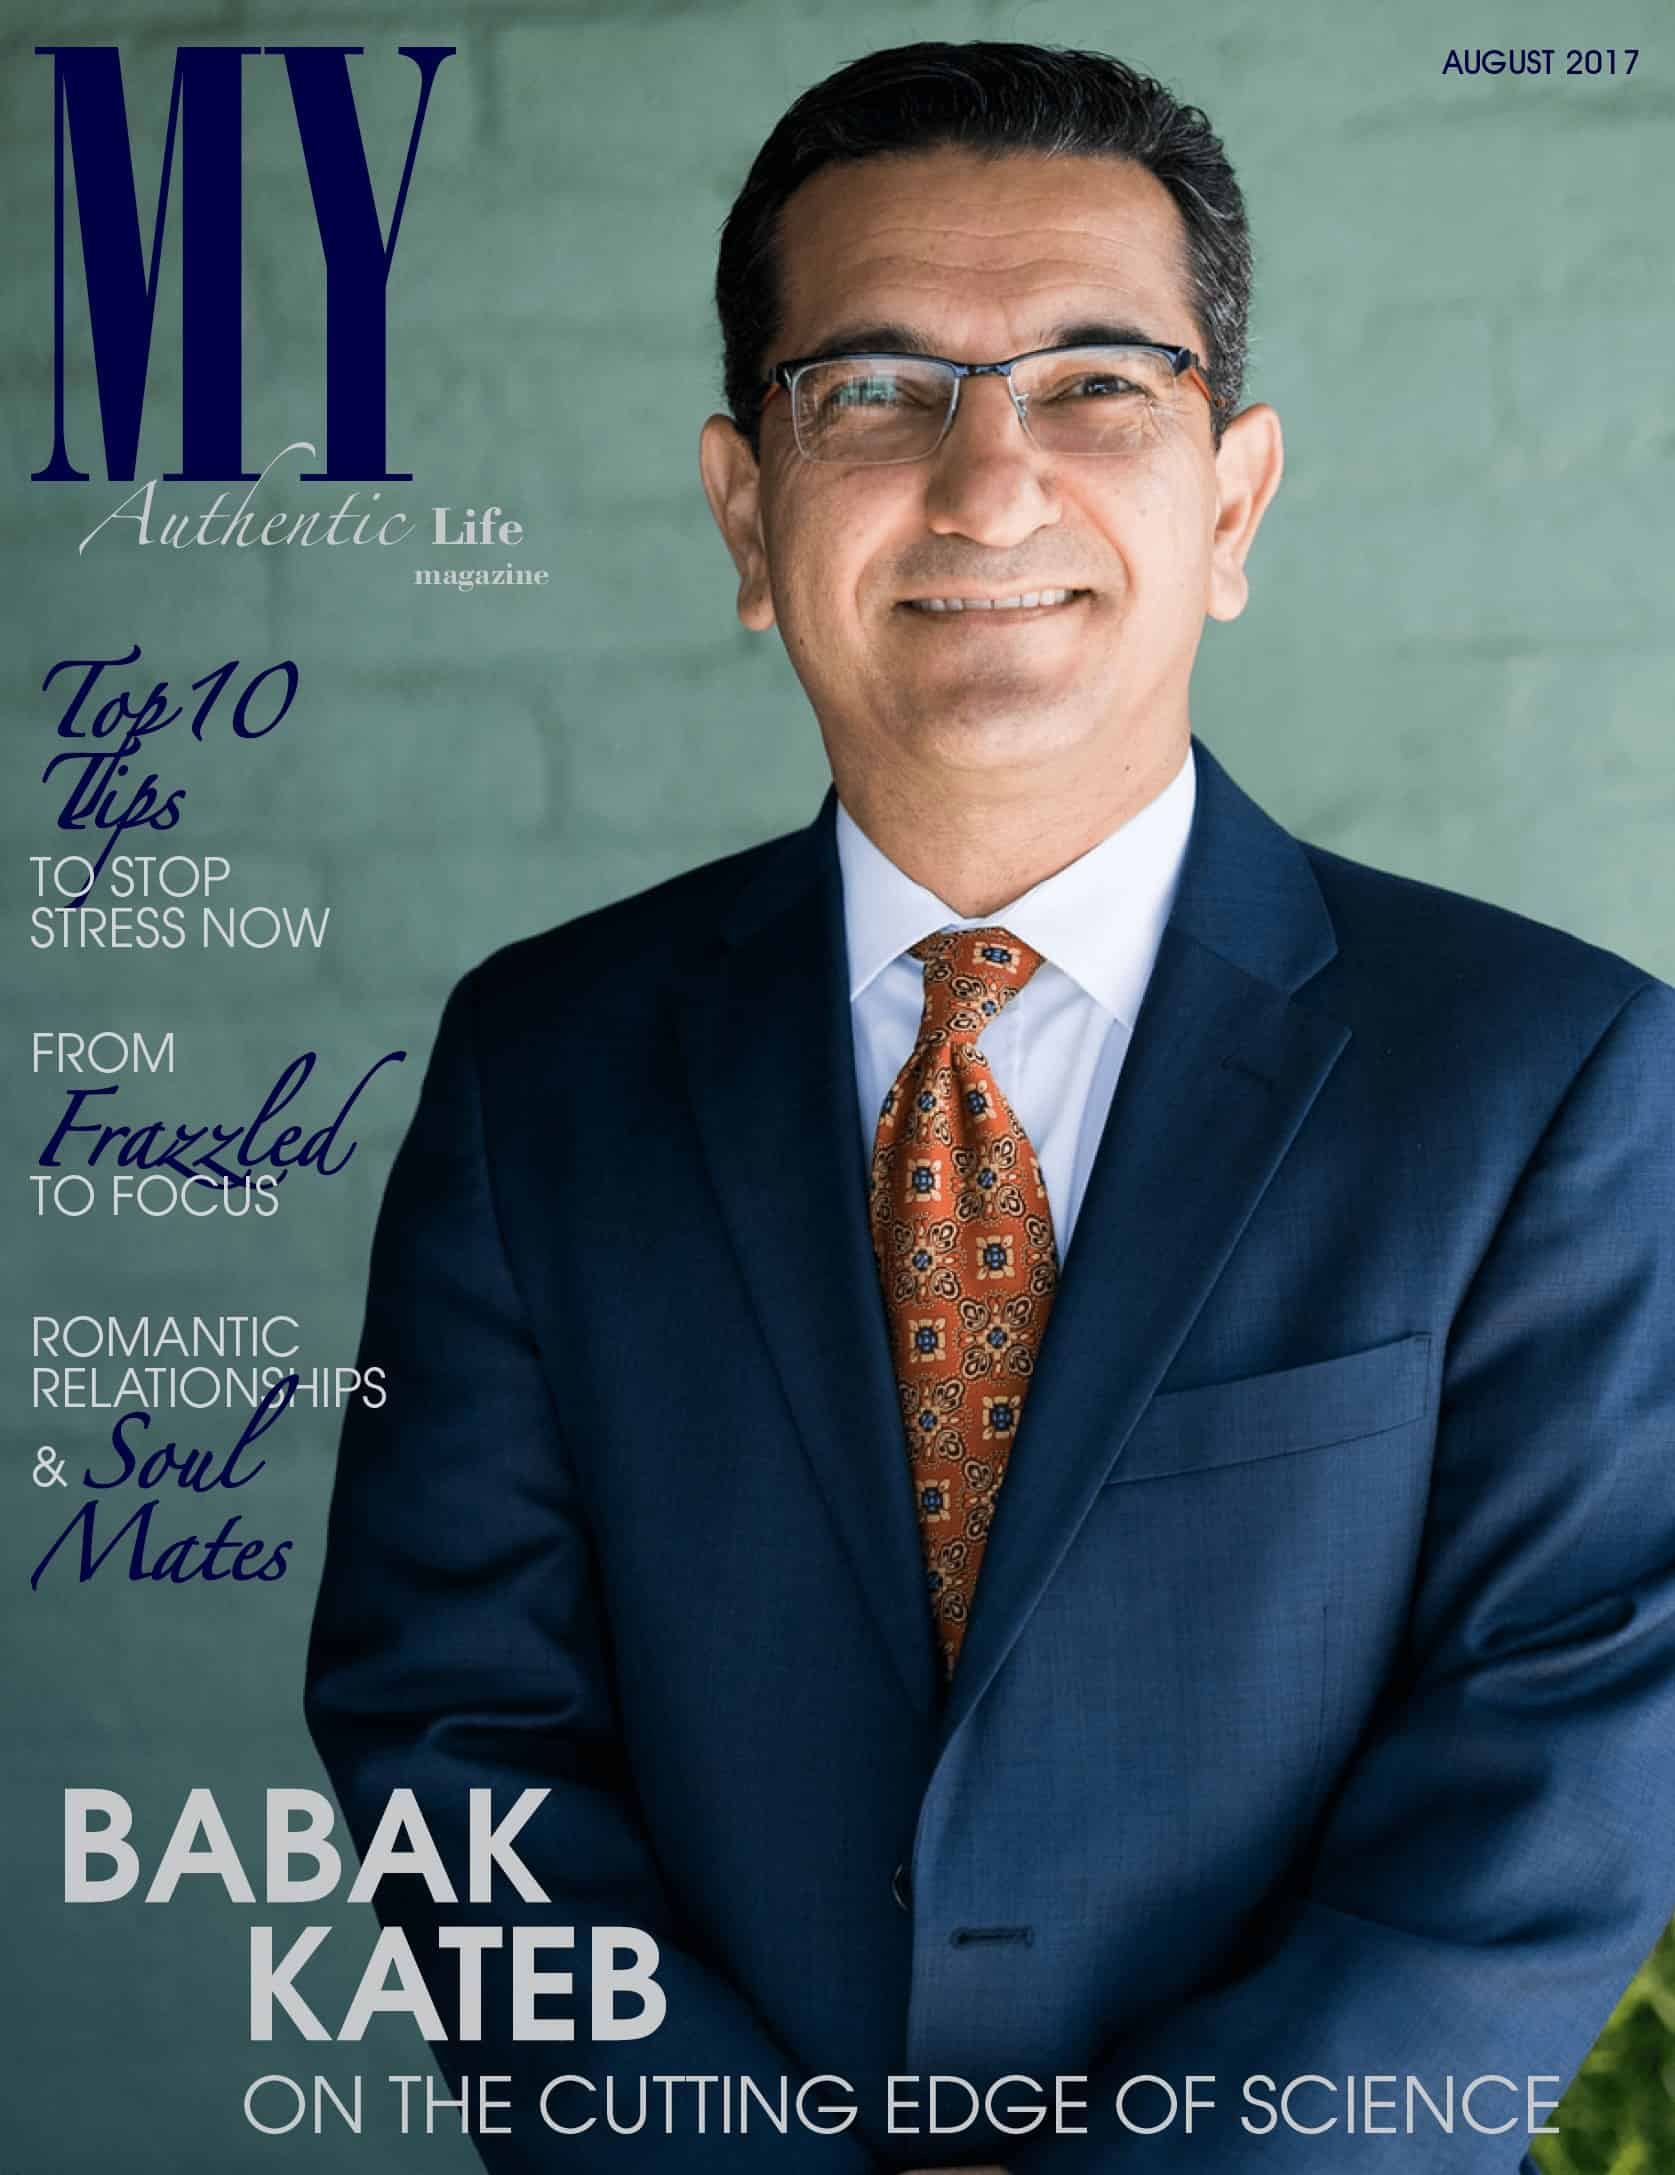 It is such an honor to feature Babak Kateb, MD on the cover of MY Authentic Life Magazine this month